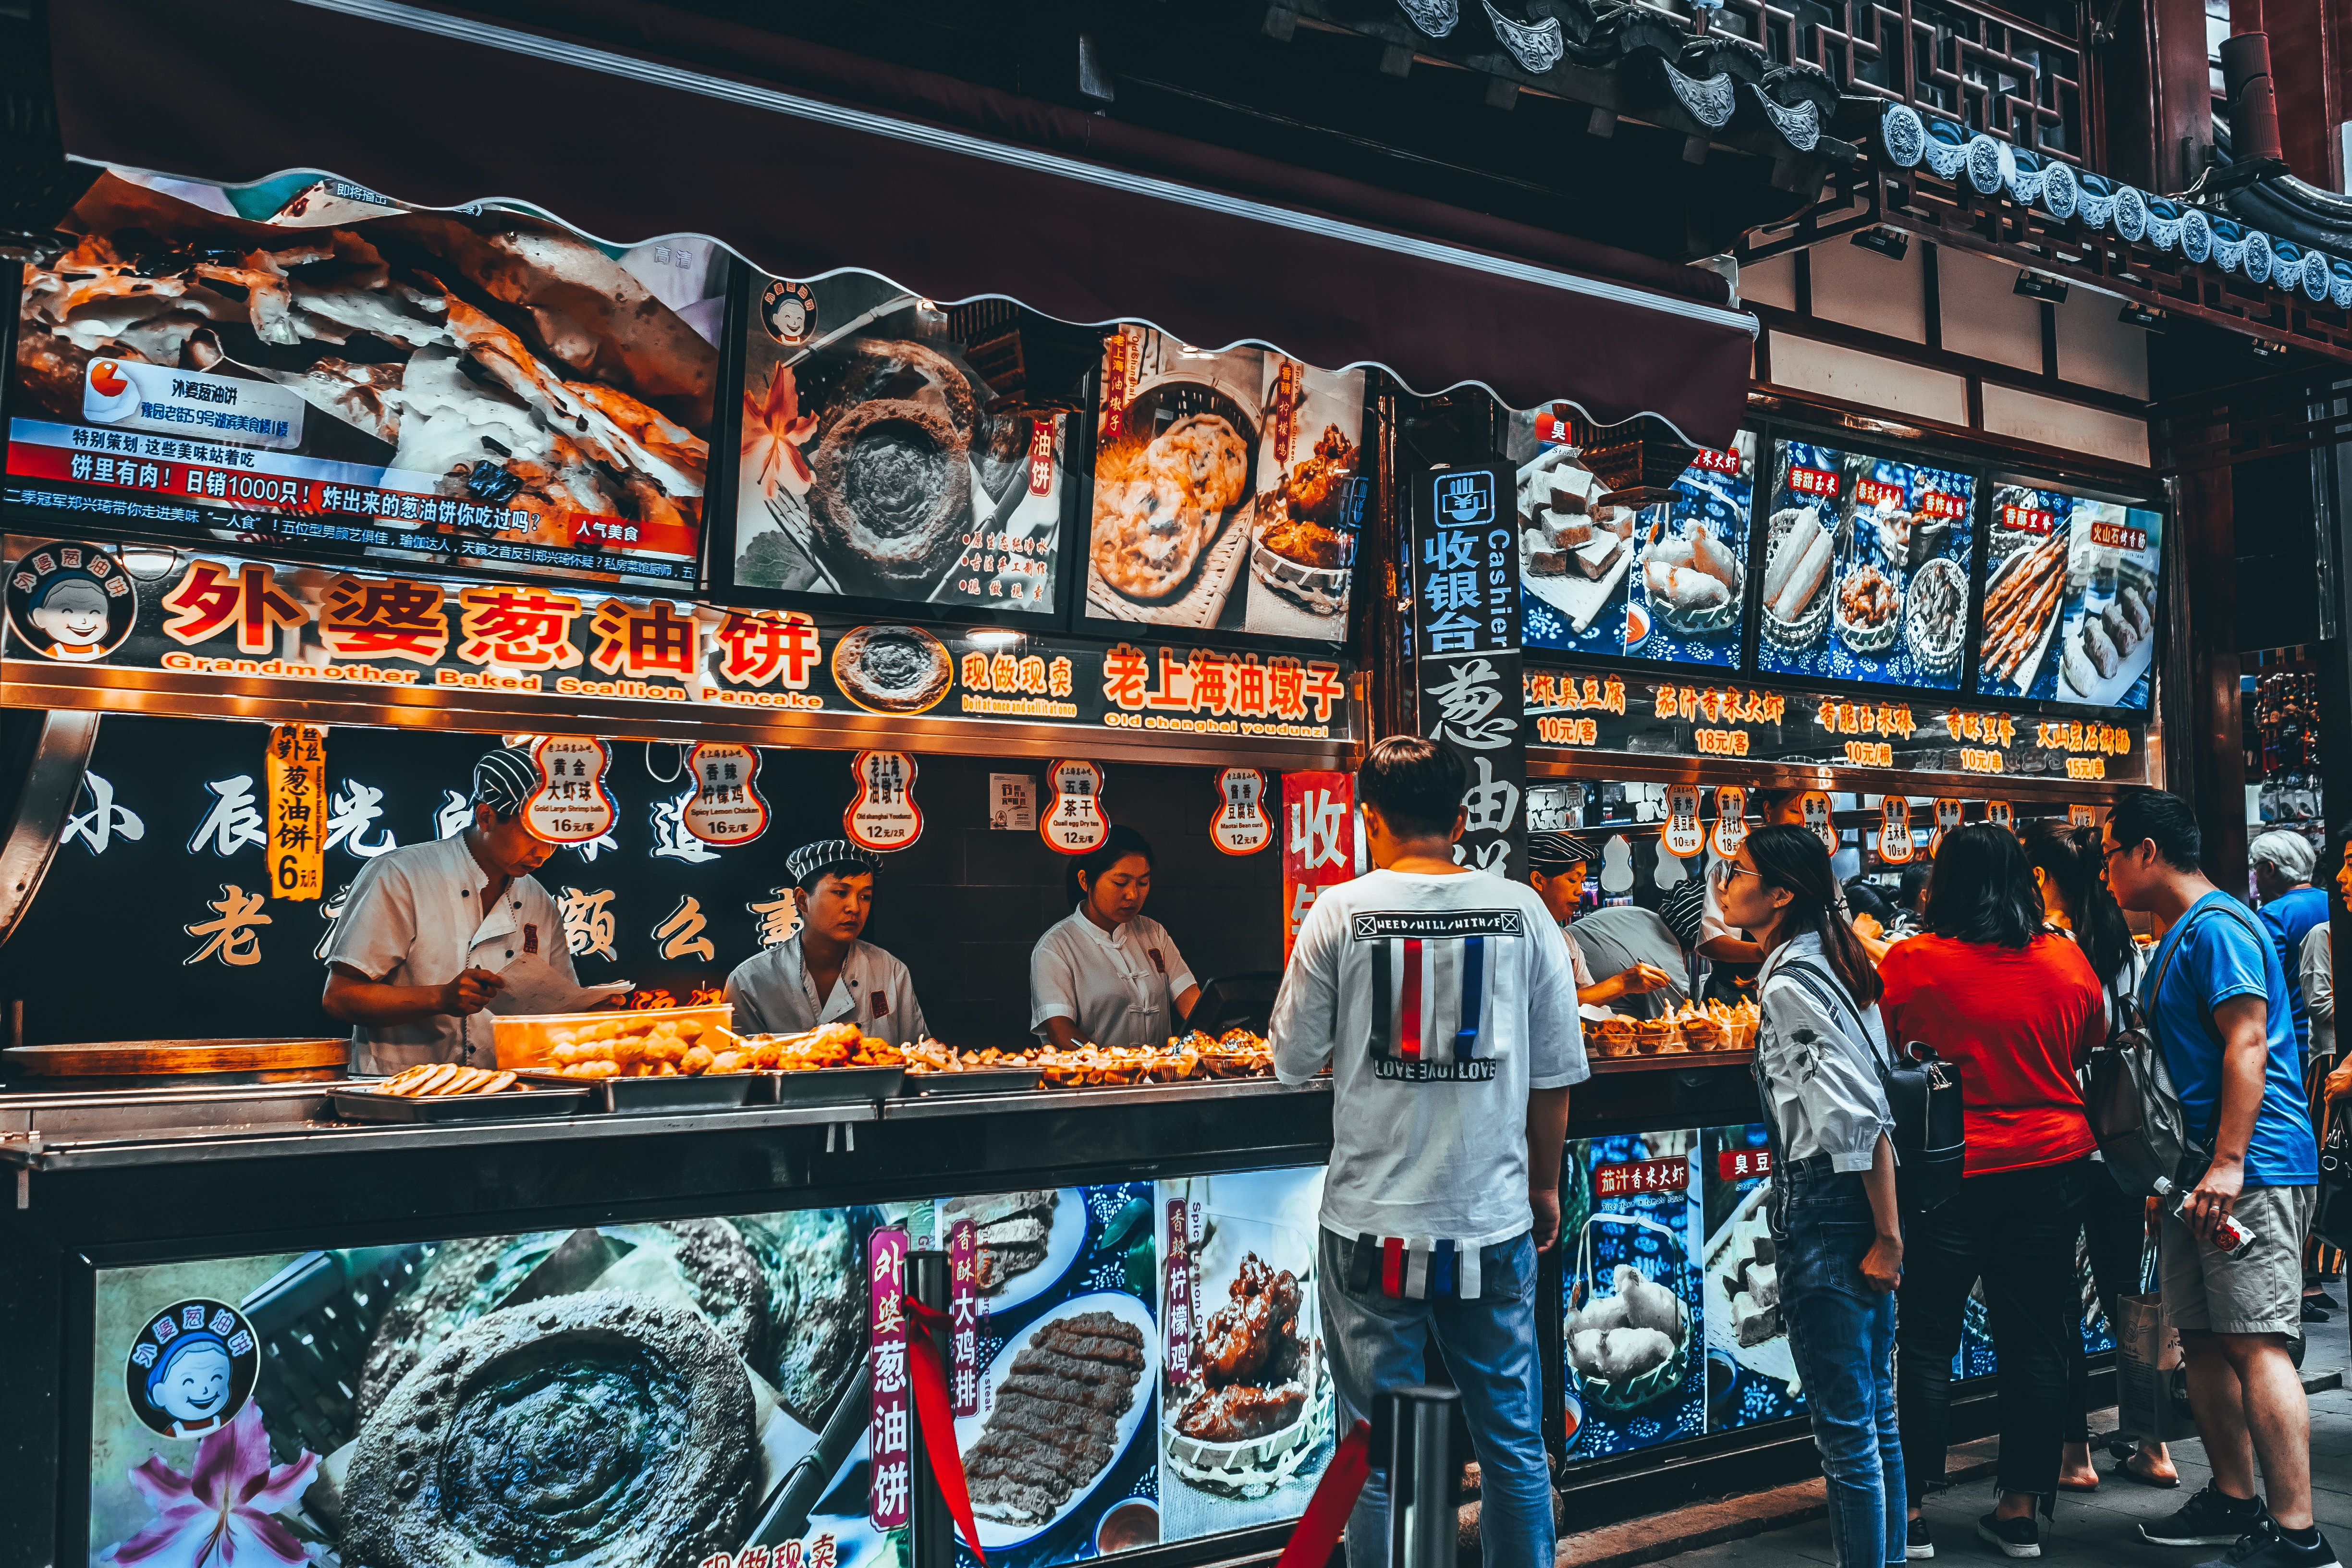 group of people buying food on food stall